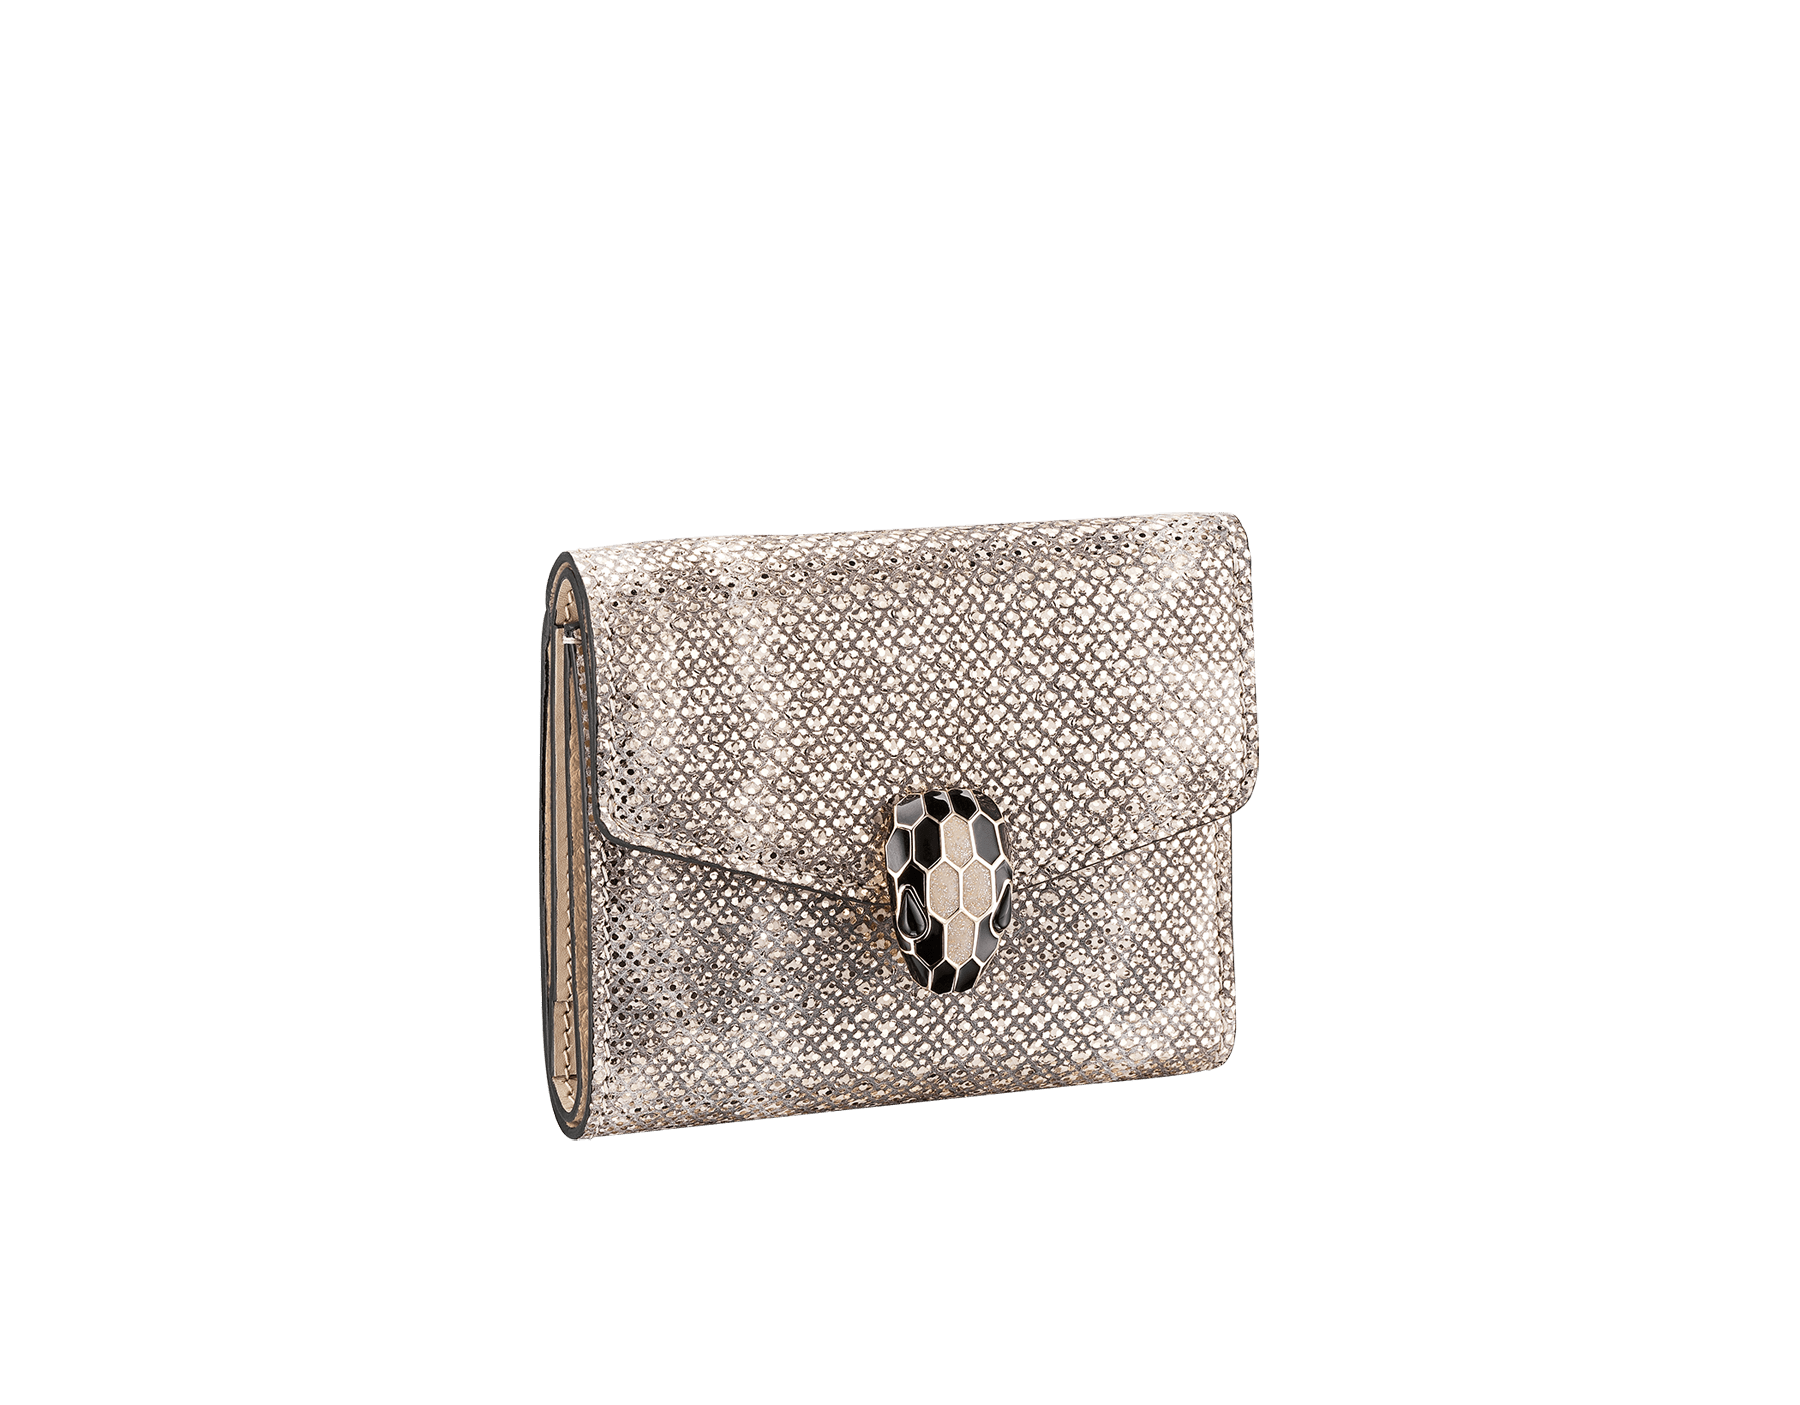 Serpenti Forever square compact wallet in daisy topaz and crystal rose calf leather. Iconic snake head stud closure in black and white agate enamel, with green malachite eyes. SEA-WLT-COMPACT-3Fa image 1